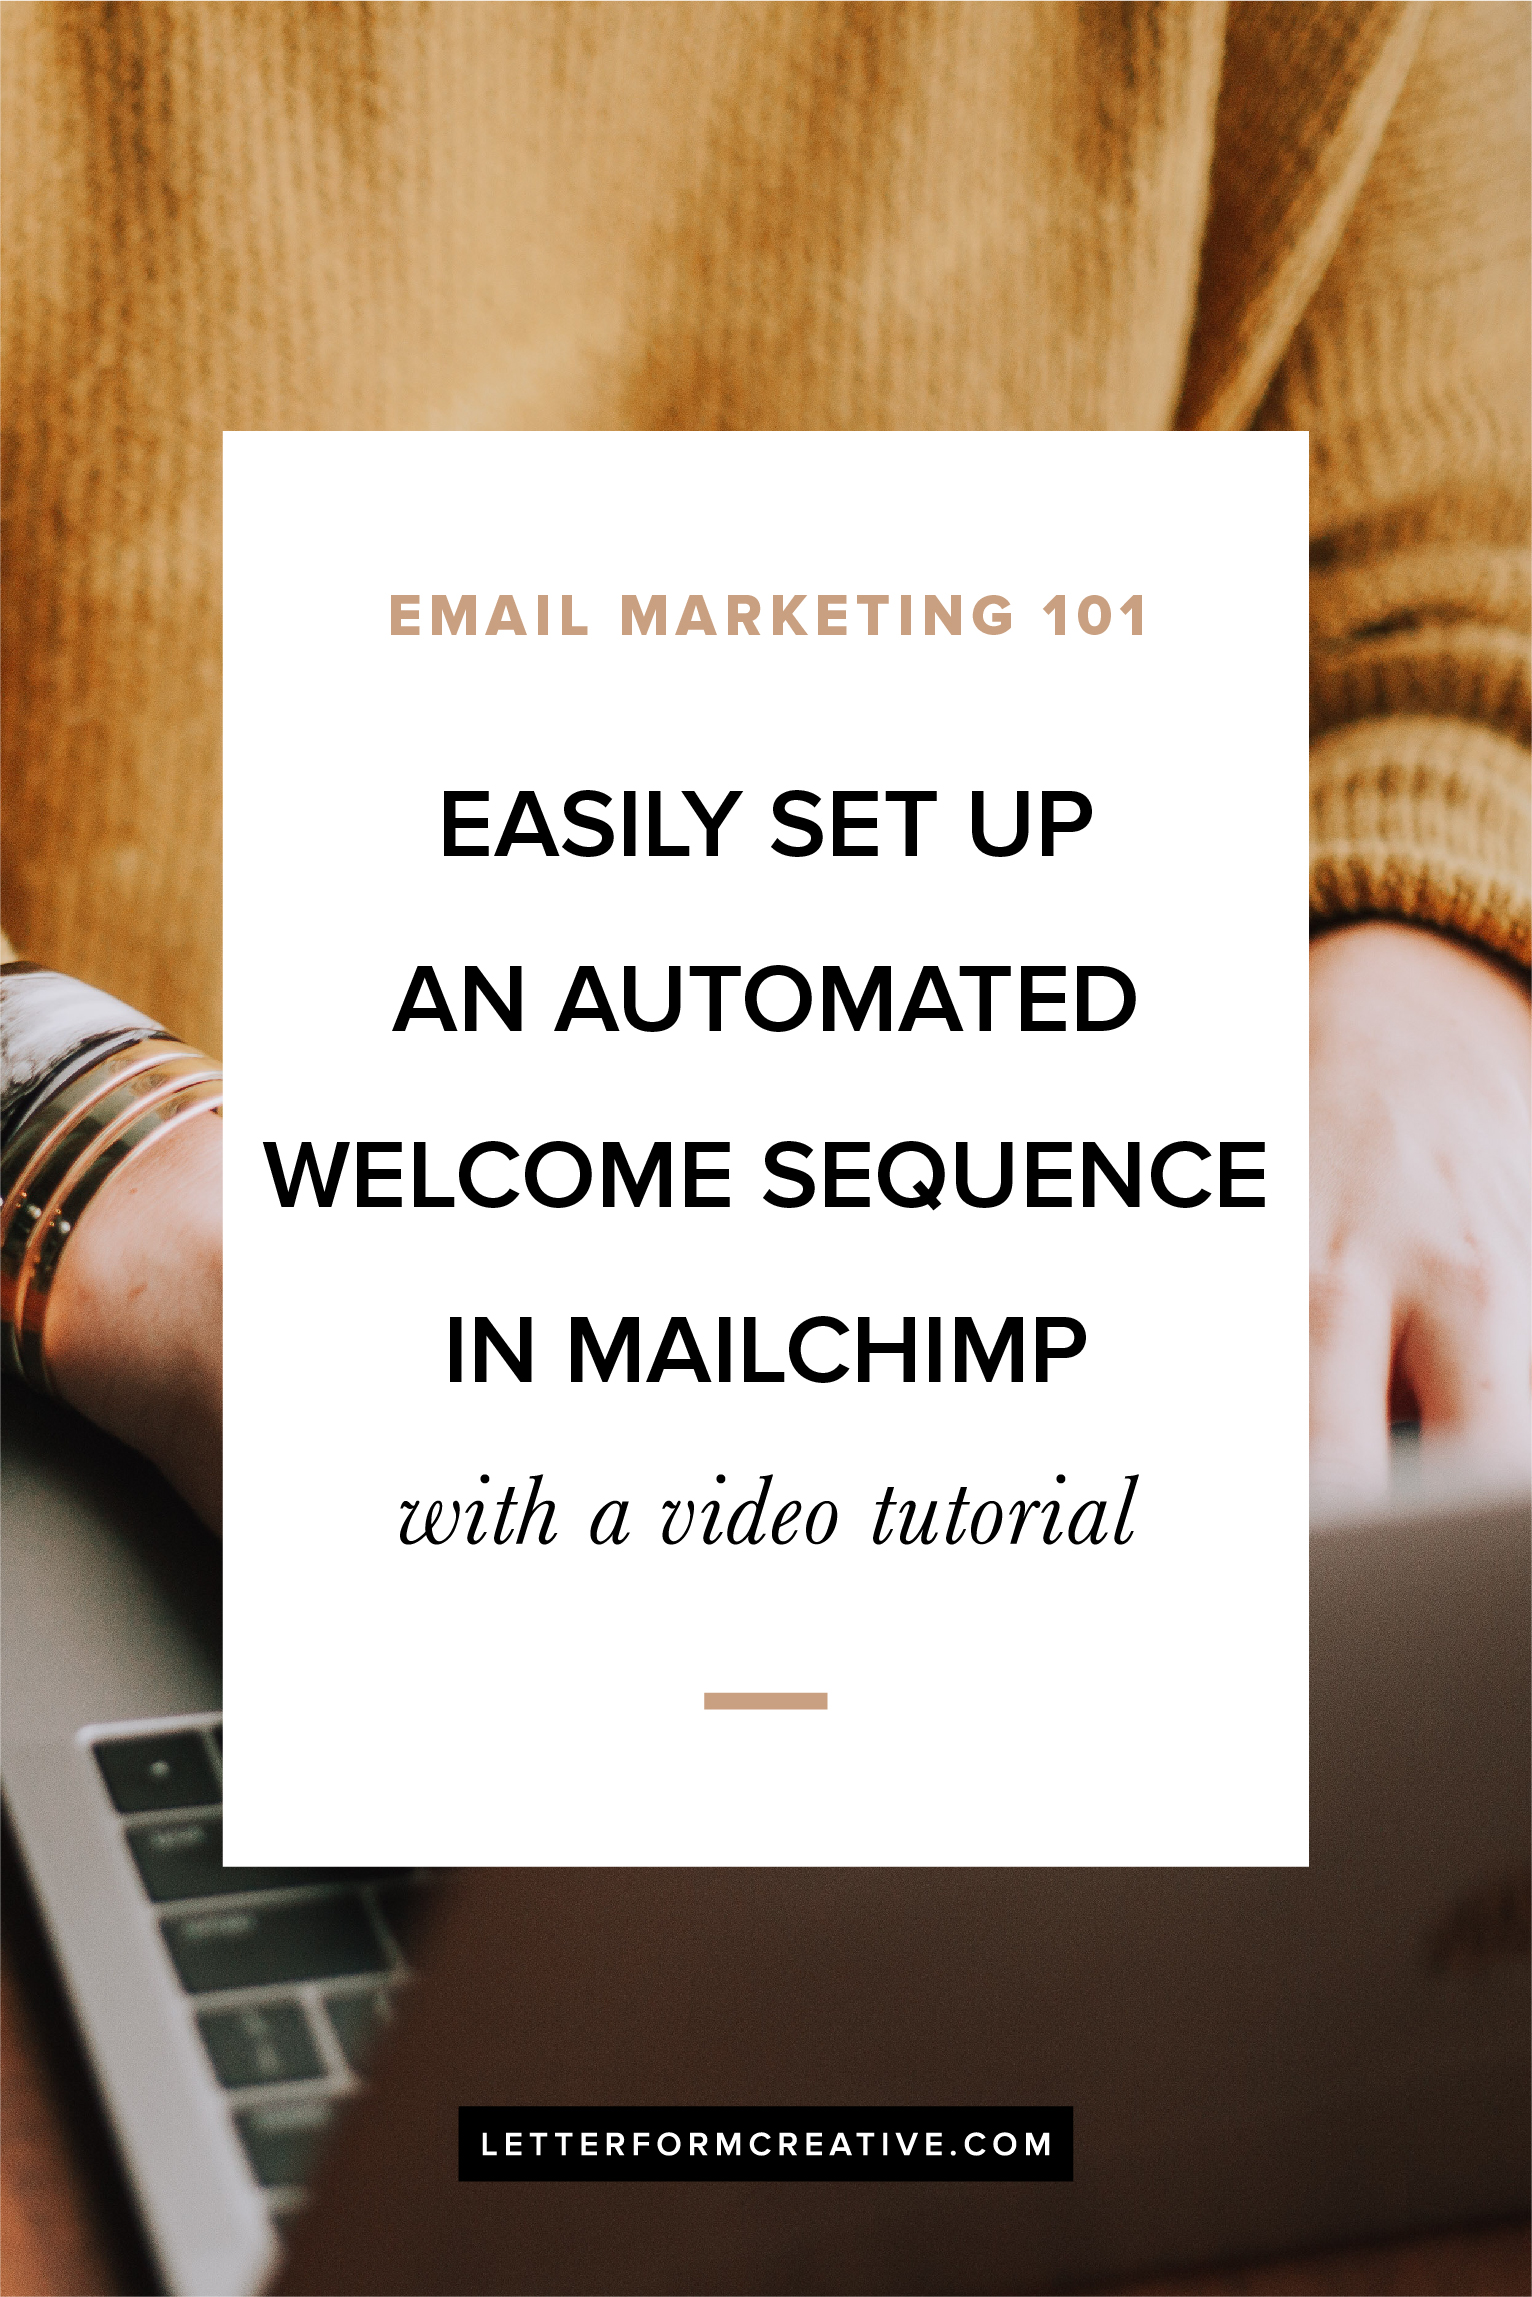 Wondering how to get started with email marketing for your small business? One of the first things you need to do is set up an automated welcome sequence for new subscribers to your list. Click through for an outline of what should be in each of your welcome emails, as well as a video tutorial showing you how to set it up in Mailchimp!